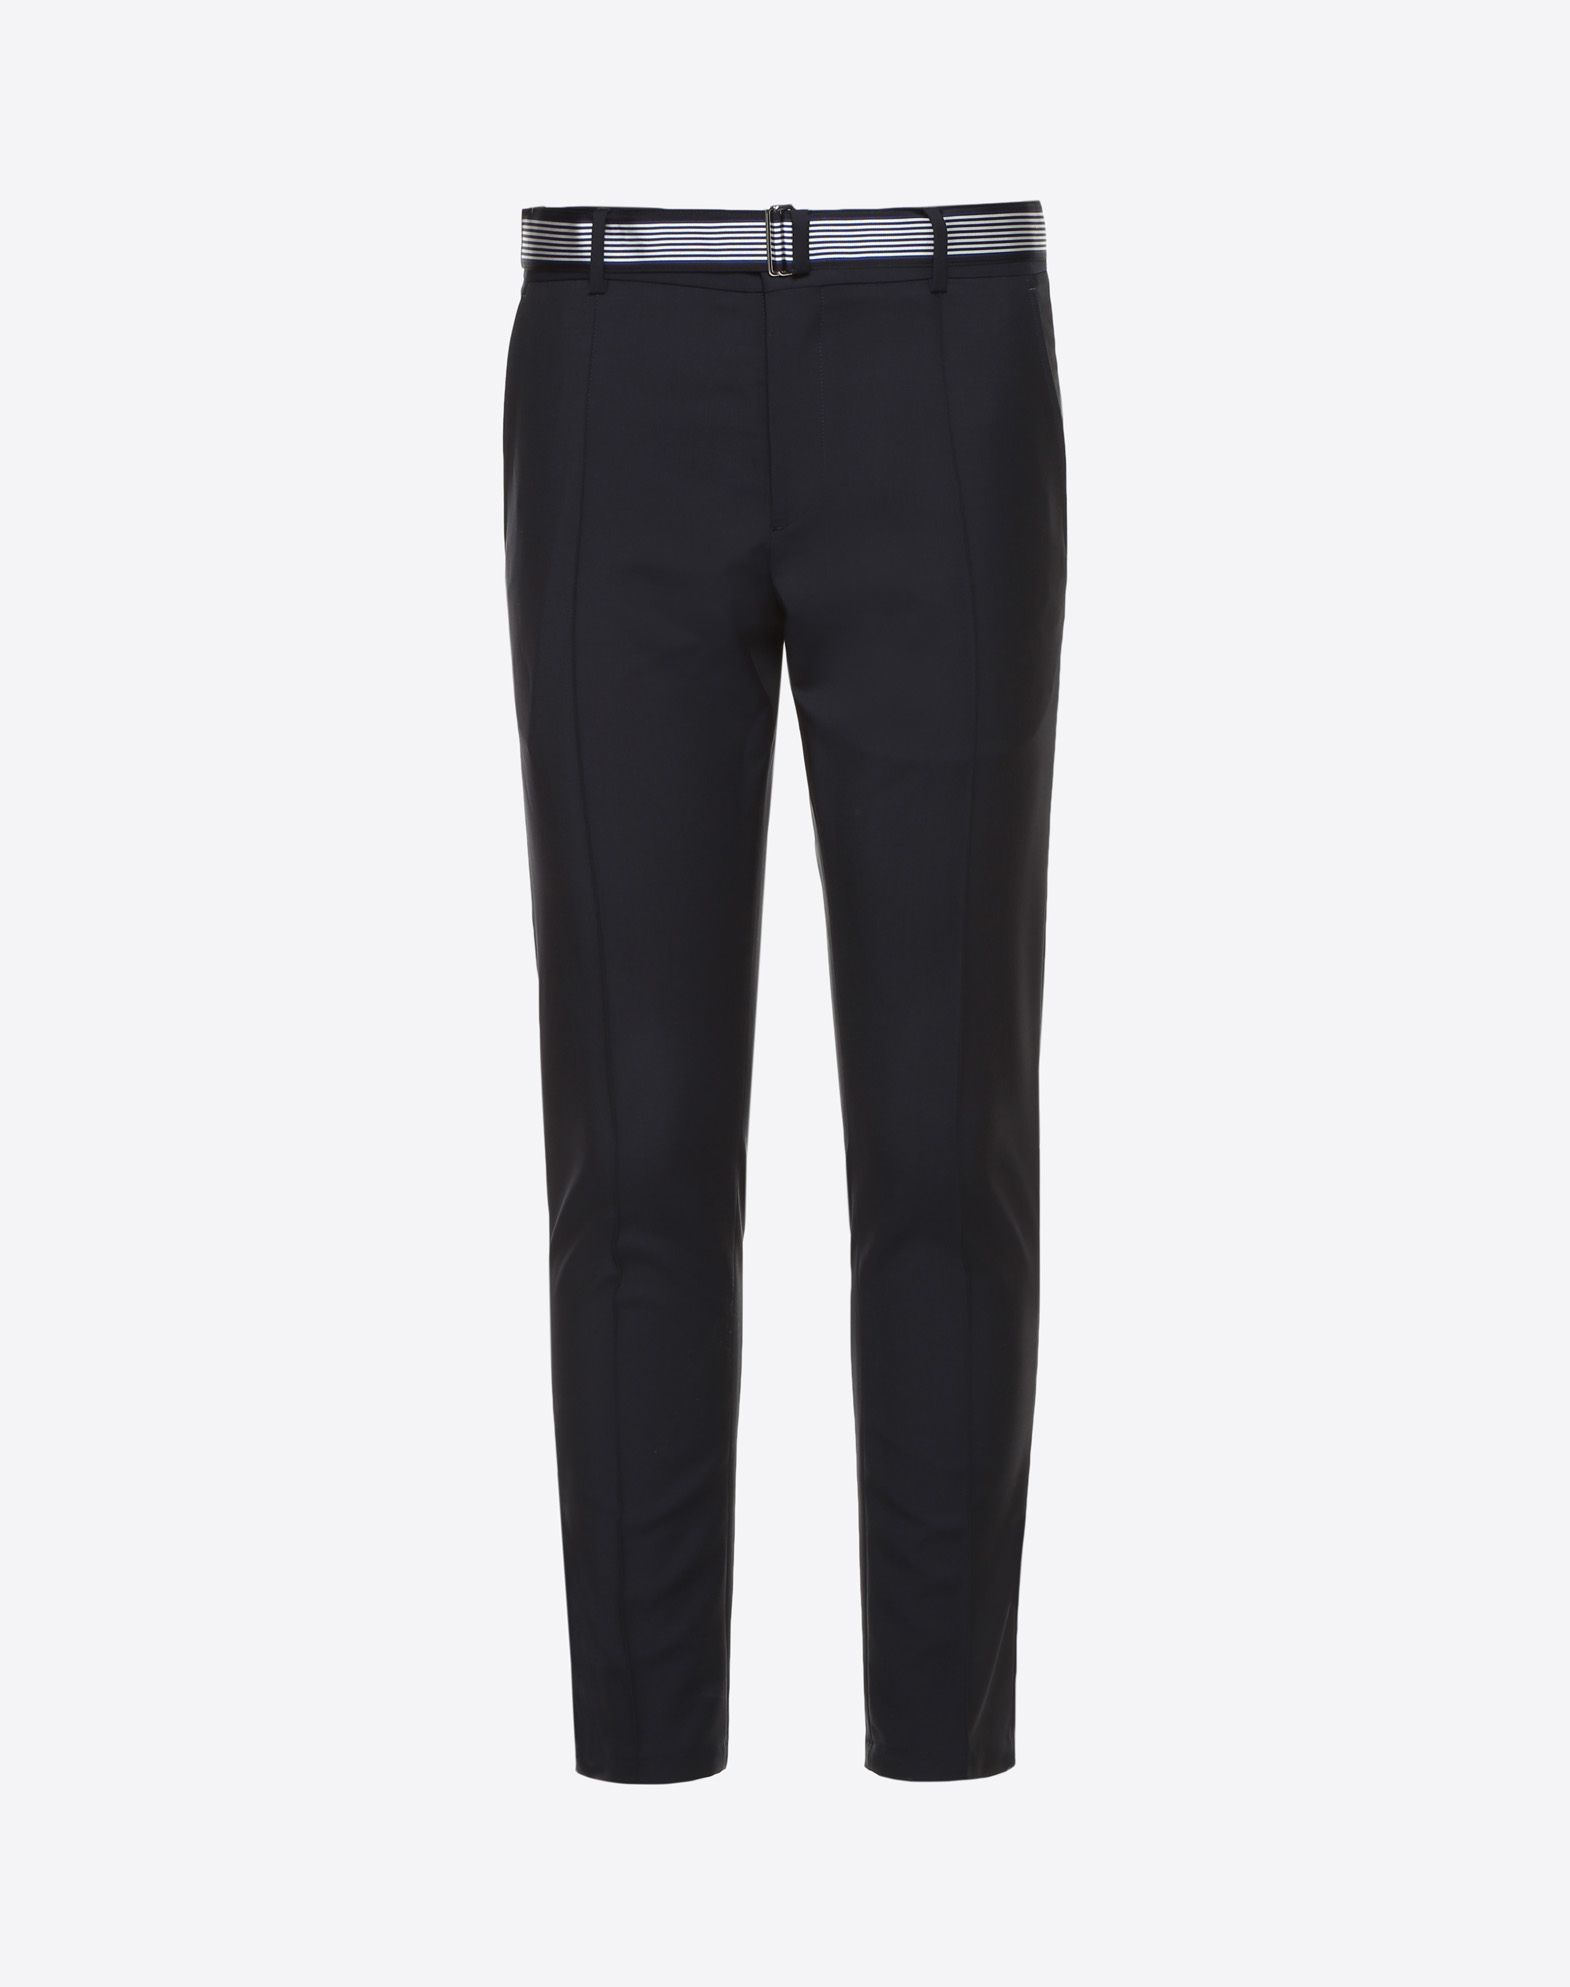 Mohair wool trousers with belt